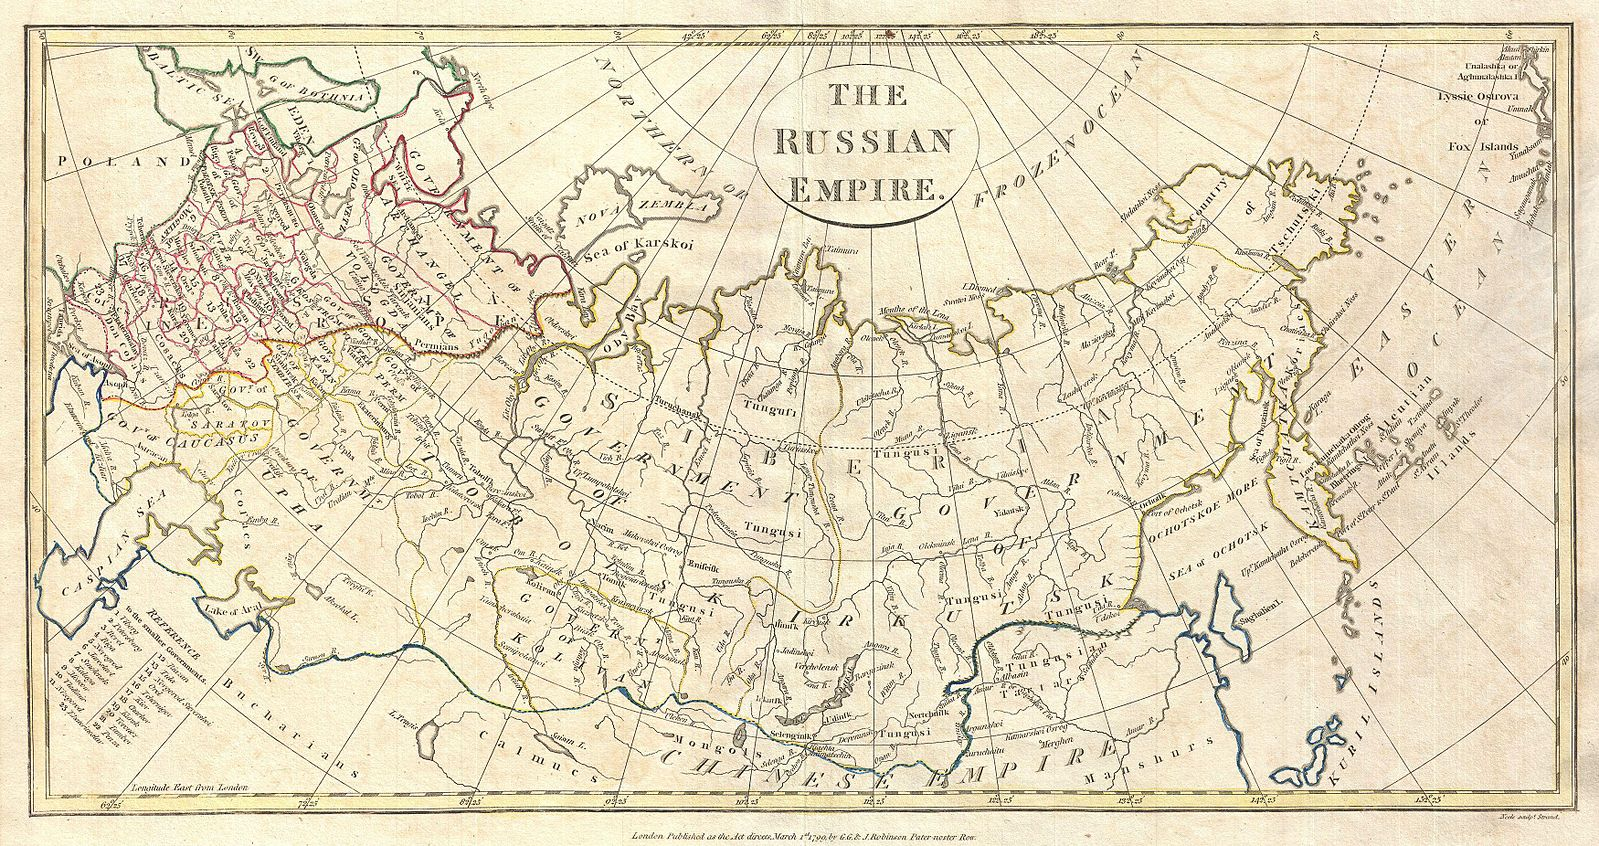 1799_Clement_Cruttwell_Map_of_Russian_Empire_-_Geographicus_-_Russia-cruttwell-1799.jpg